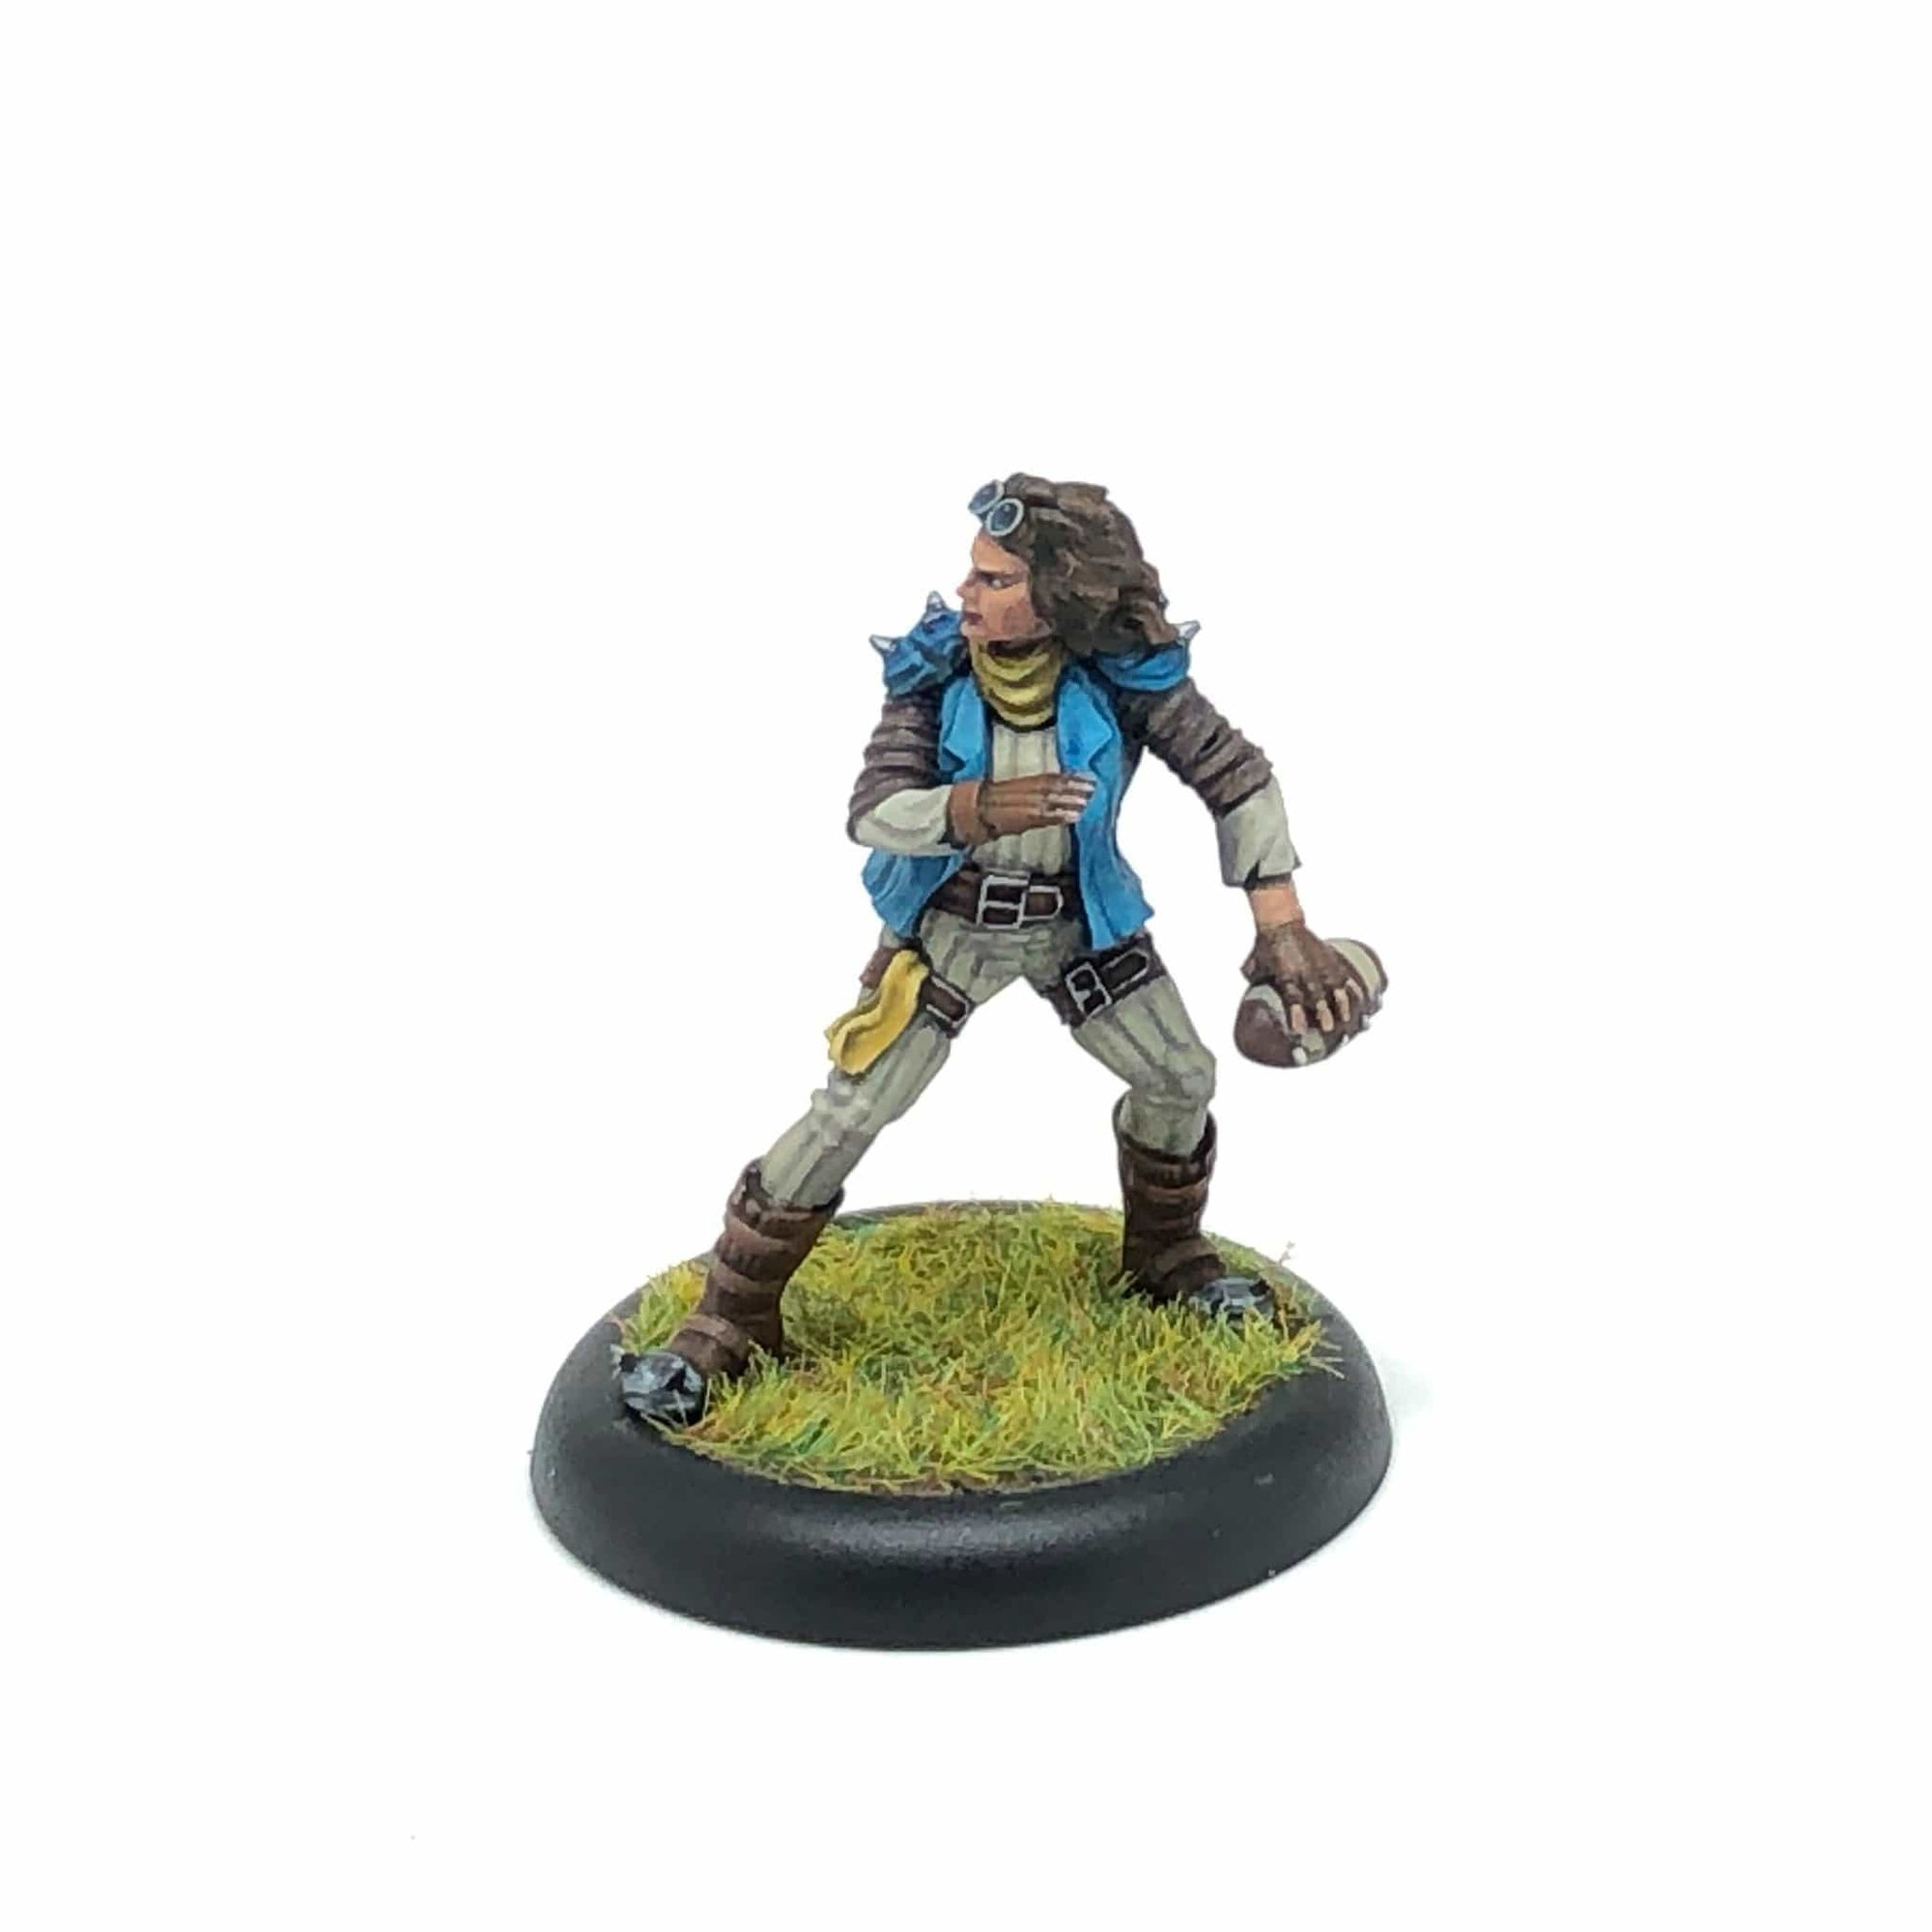 Exit 23 Games Miniature Thrower 1